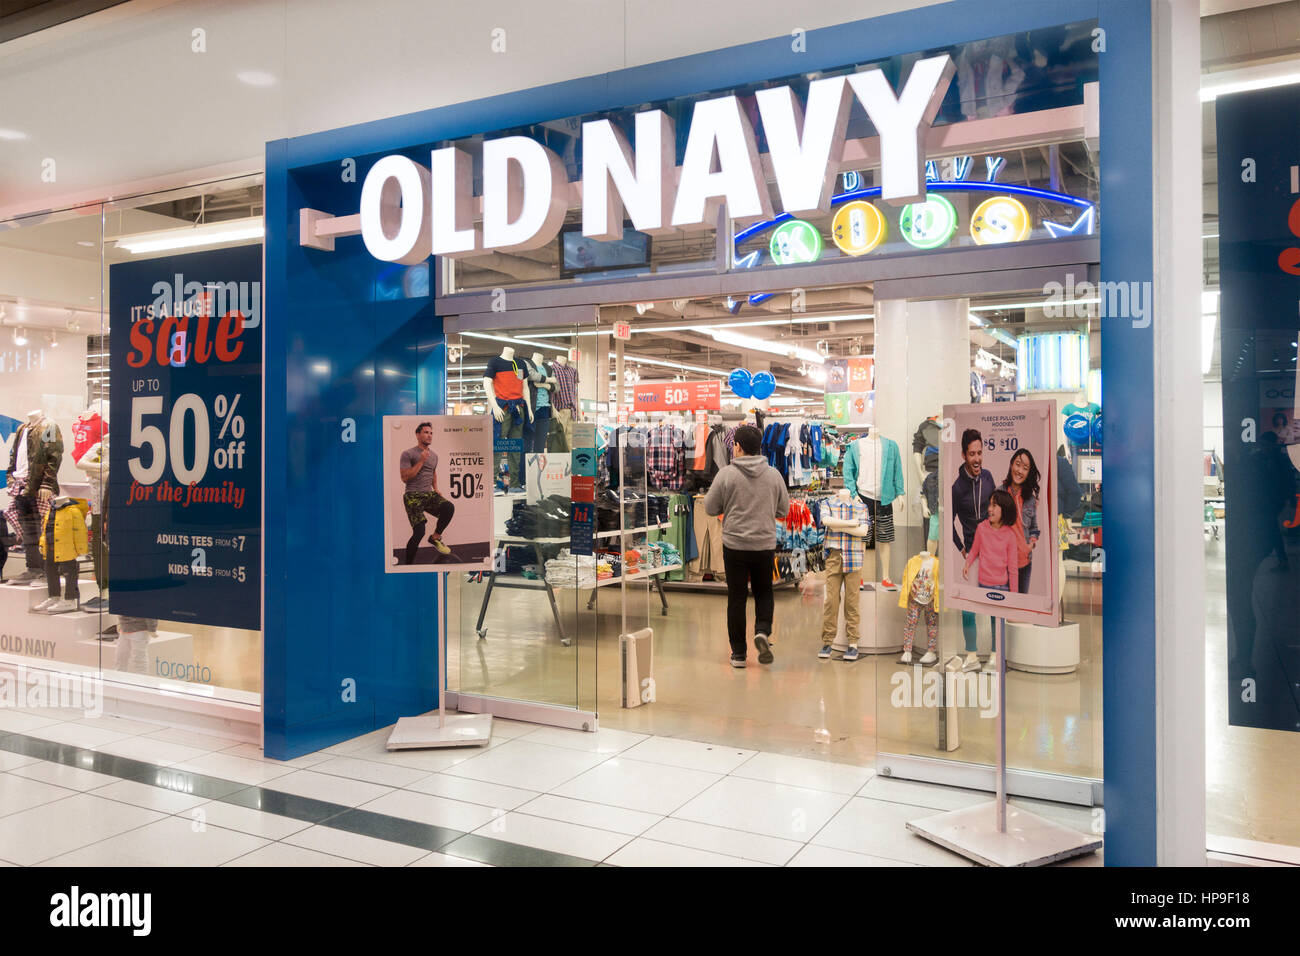 Old Navy Store In The Eaton Centre At Yonge And Dundas In